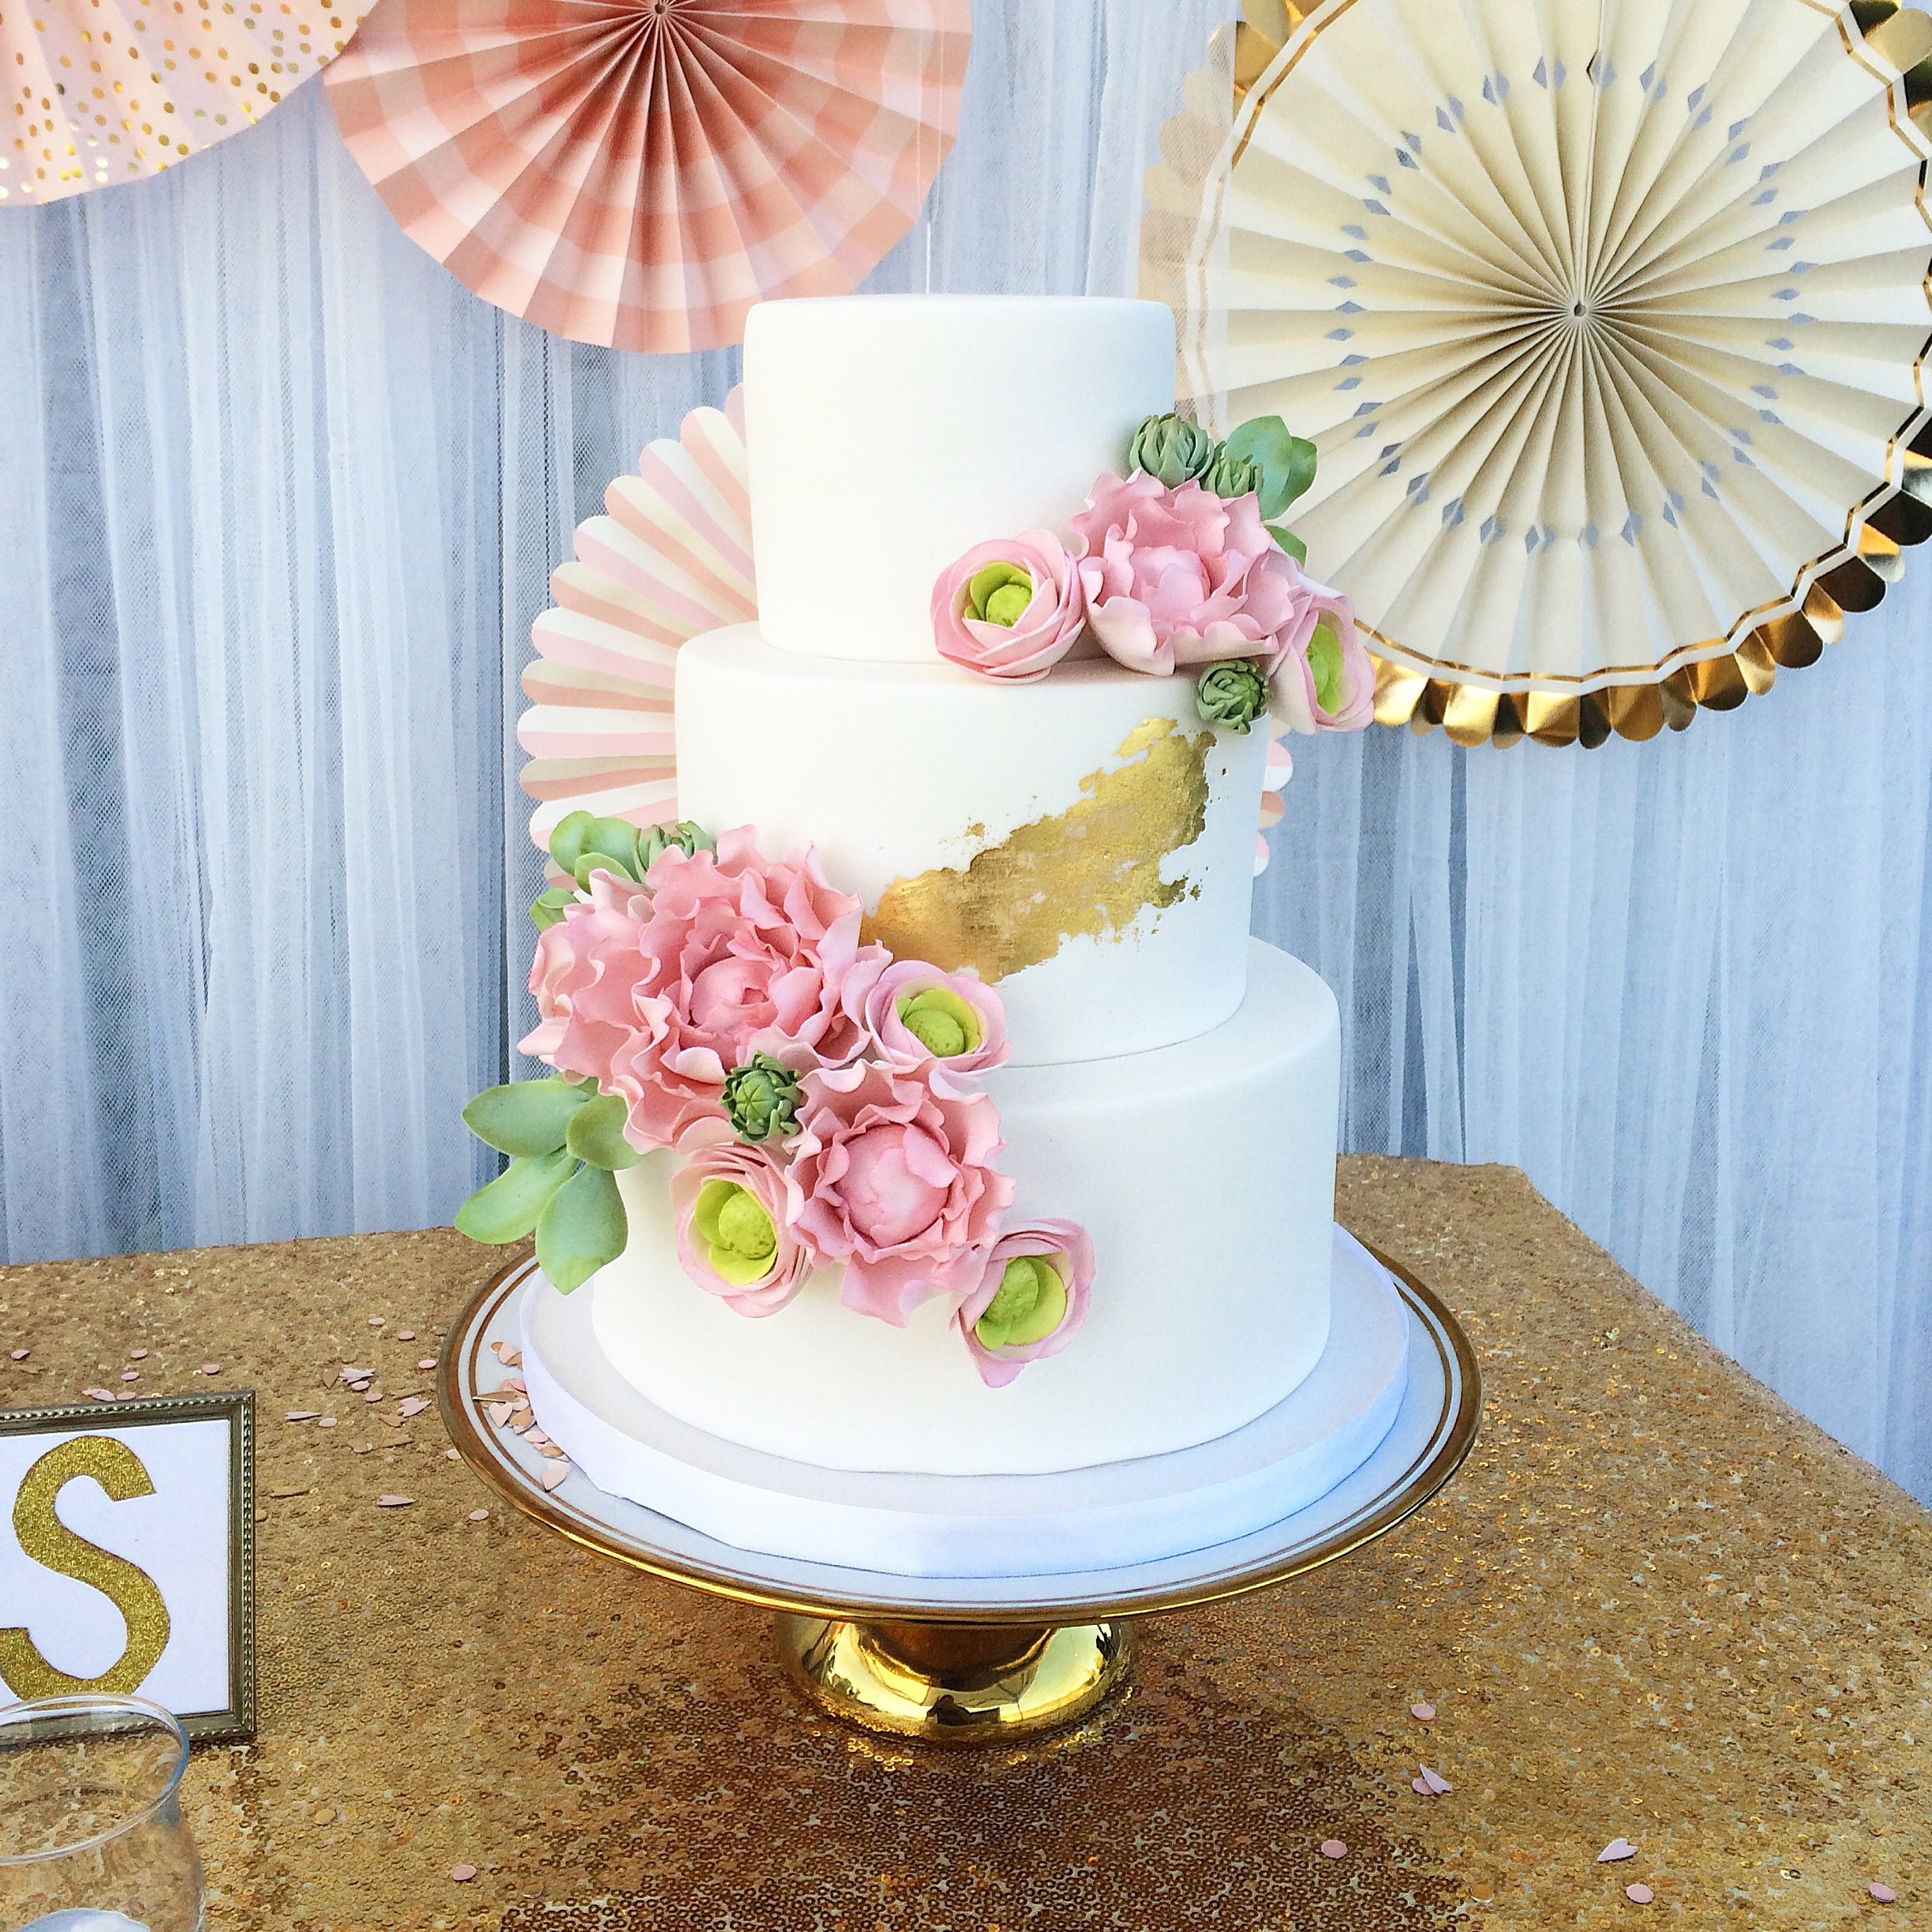 White and gold wedding with sugar flowers